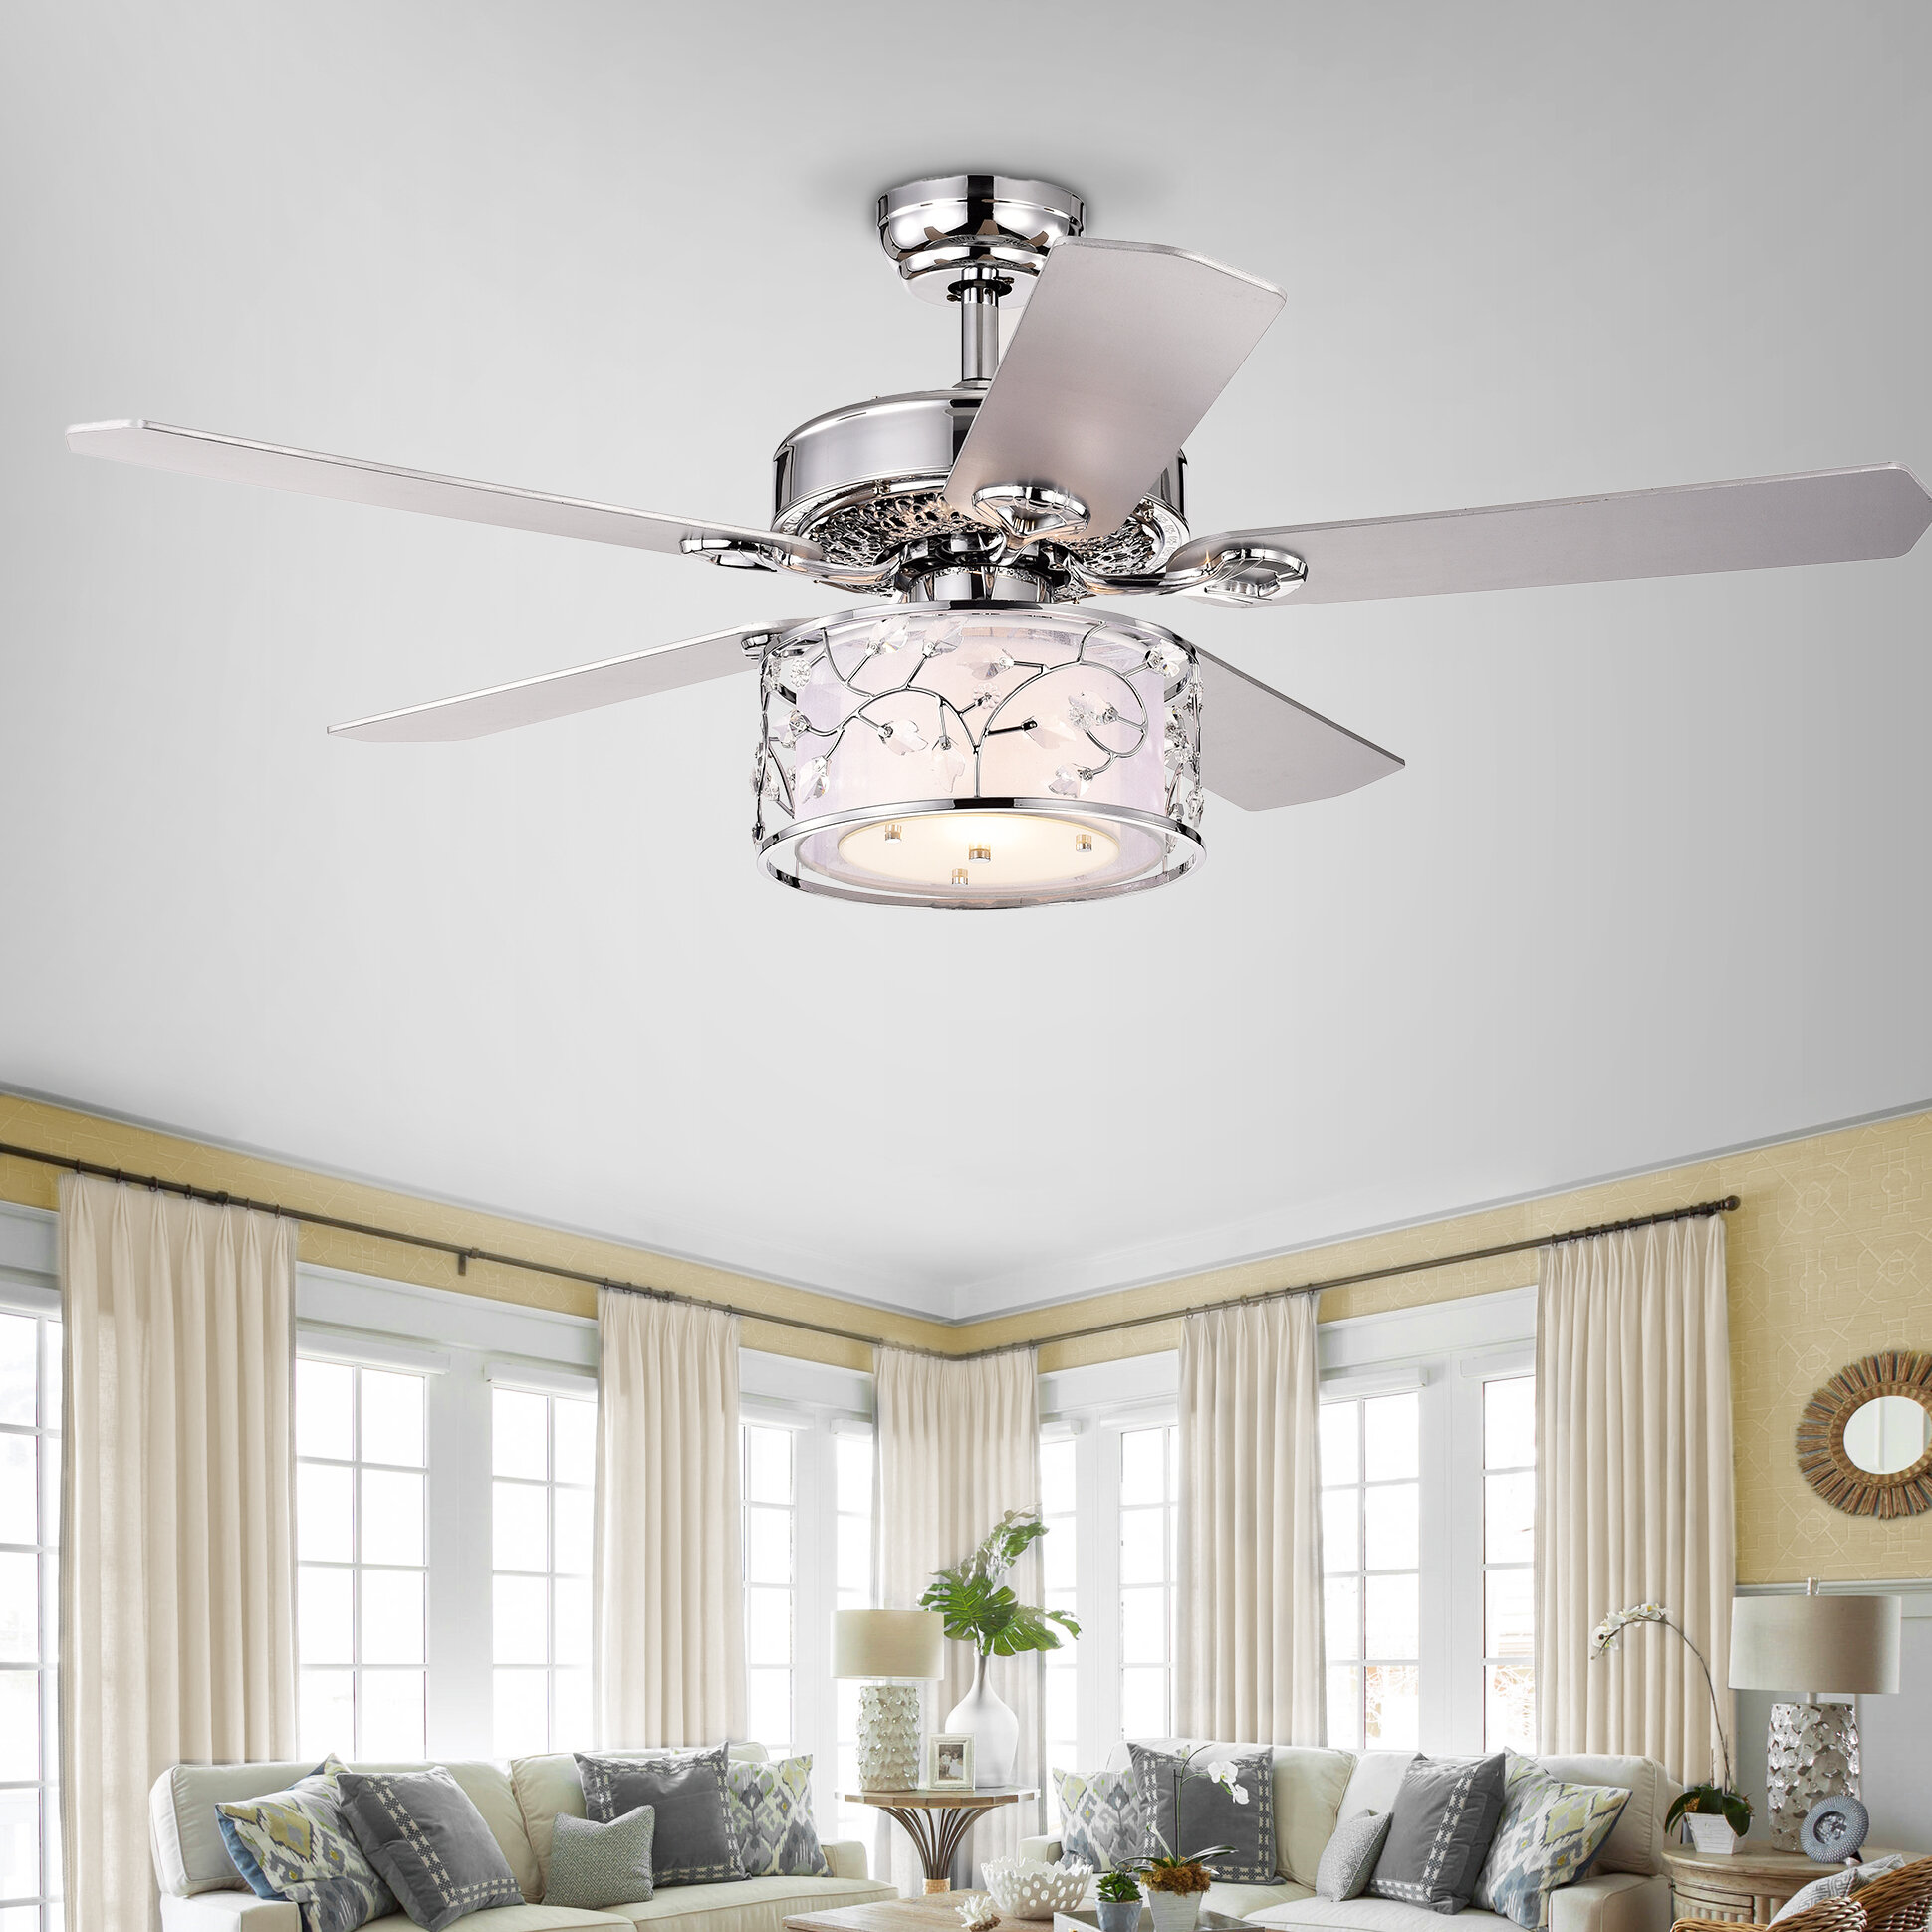 Rosdorf Park 52 Dobbins 5 Blade Crystal Ceiling Fan With Remote Control And Light Kit Included Reviews Wayfair